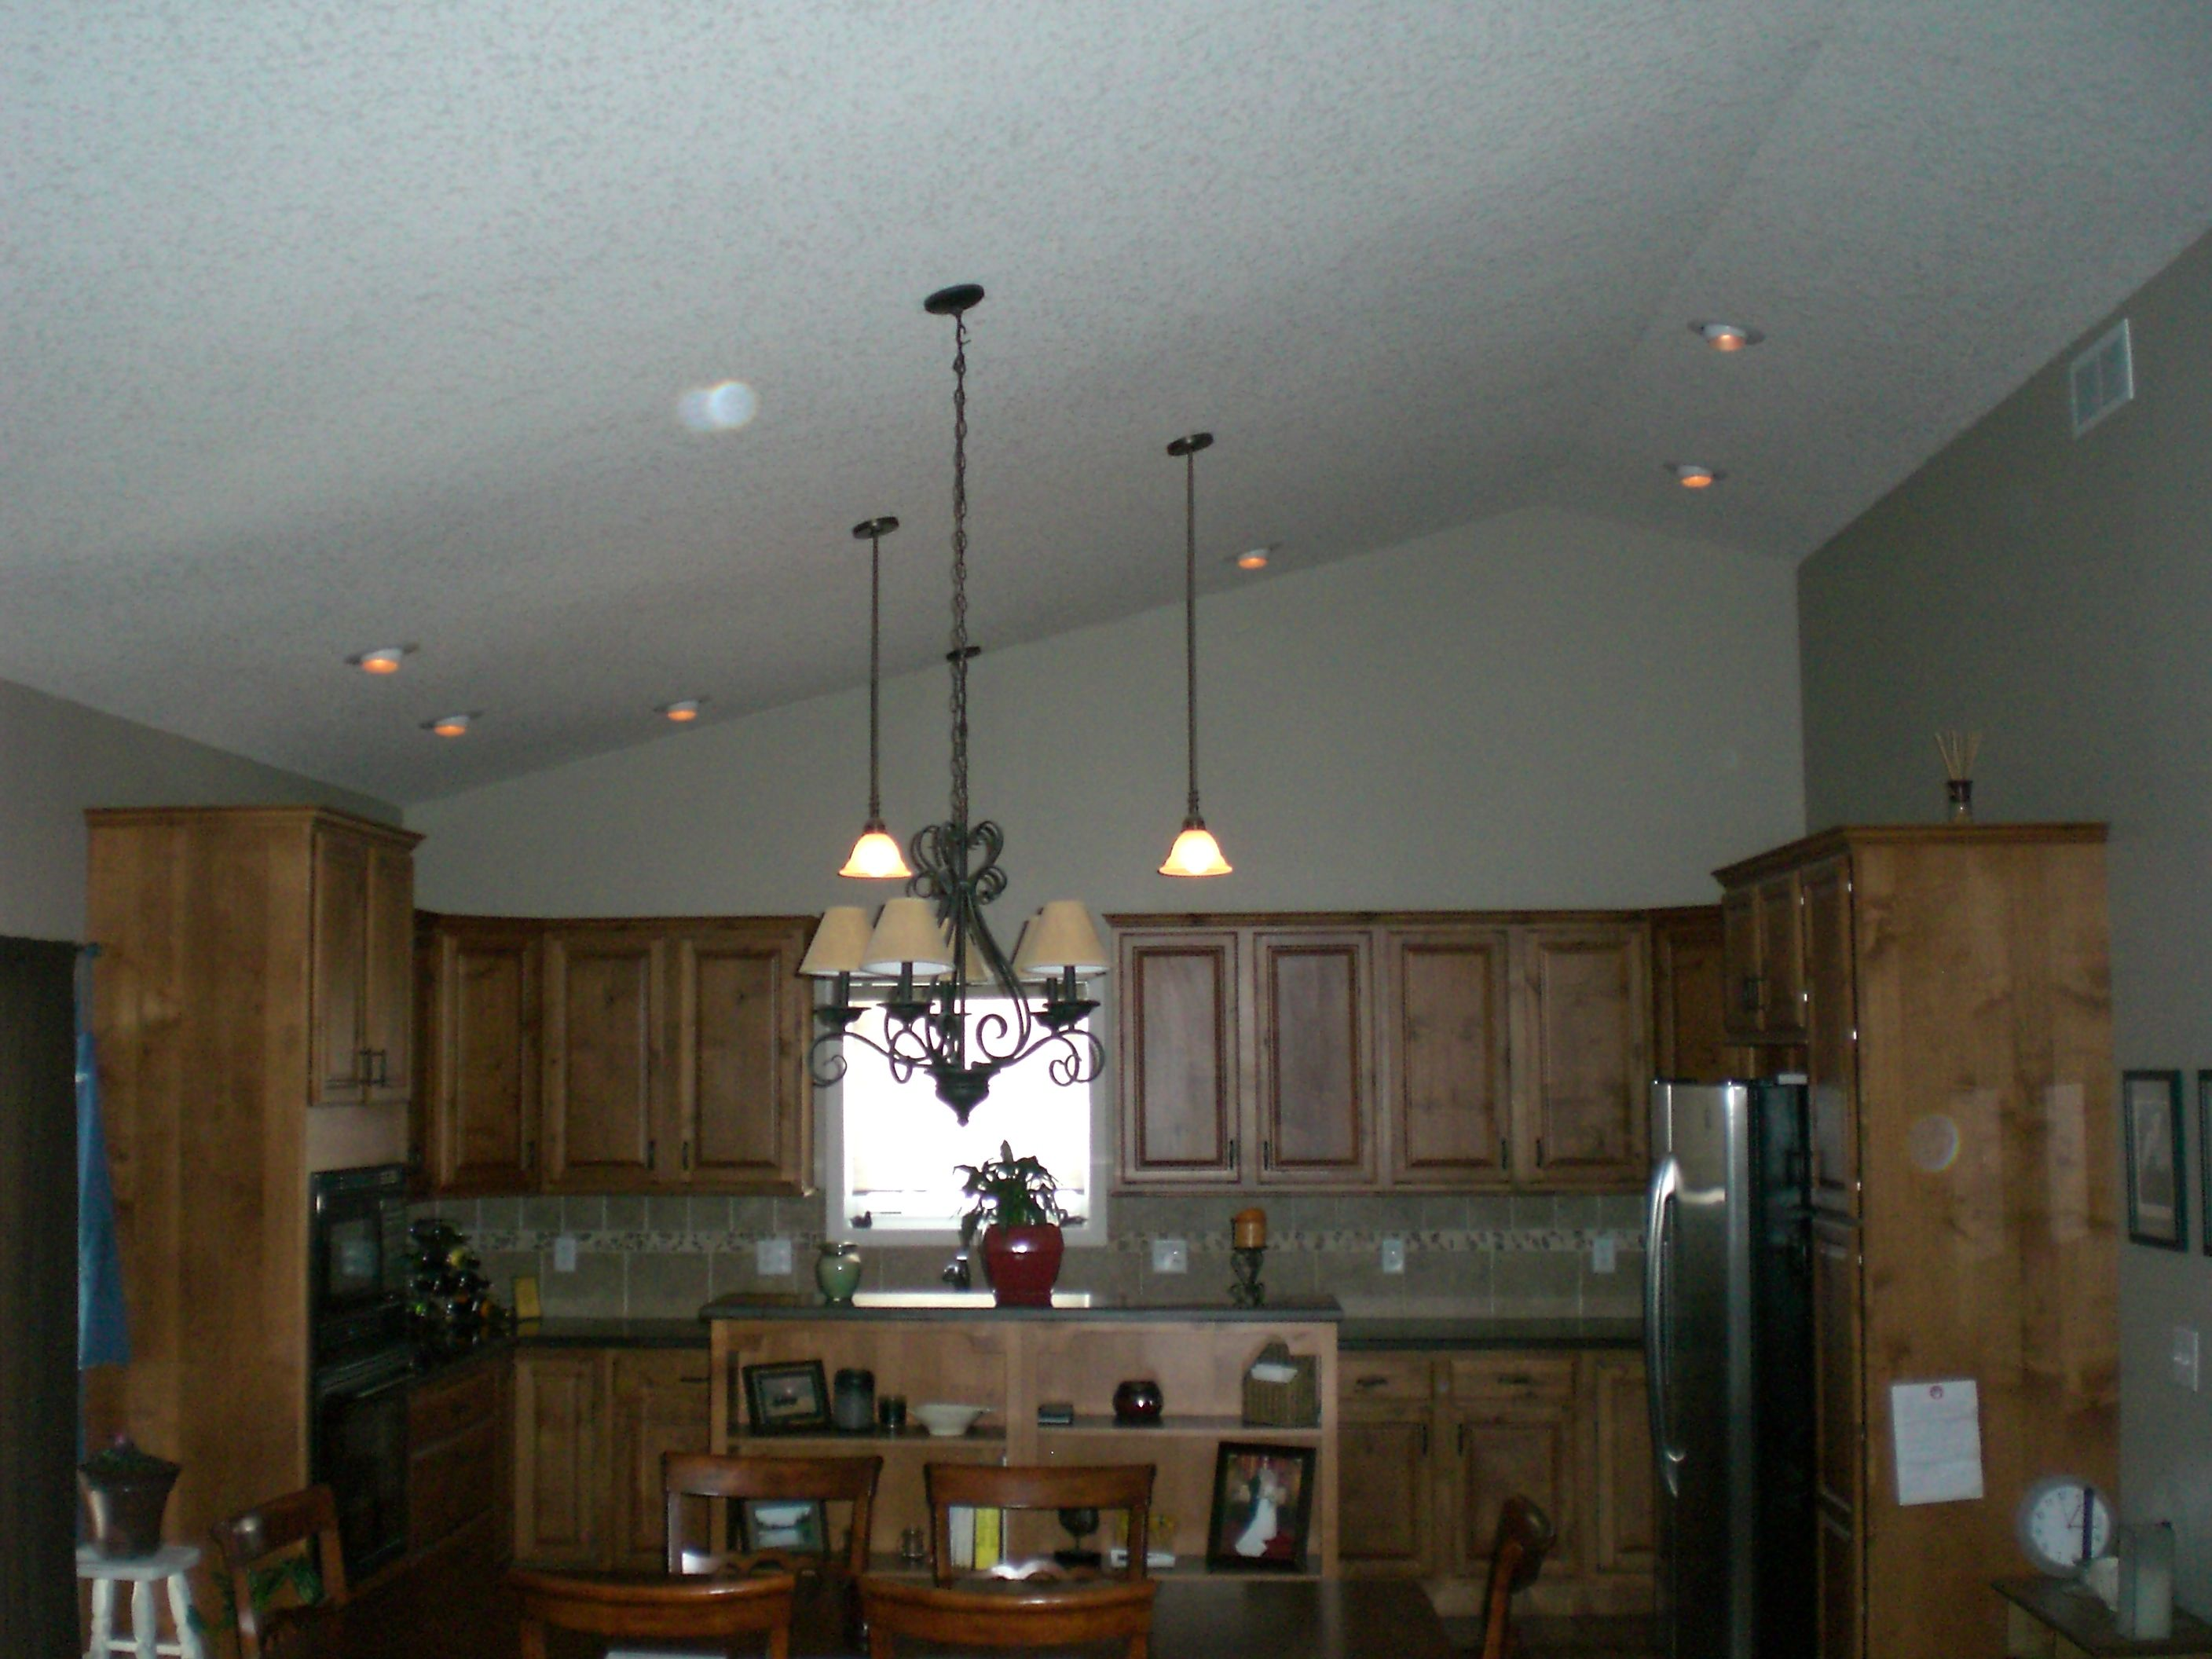 Uncategorized Kitchen Lighting For Vaulted Ceilings looking for lighting the kitchen i like idea of pot island vaulted ceiling